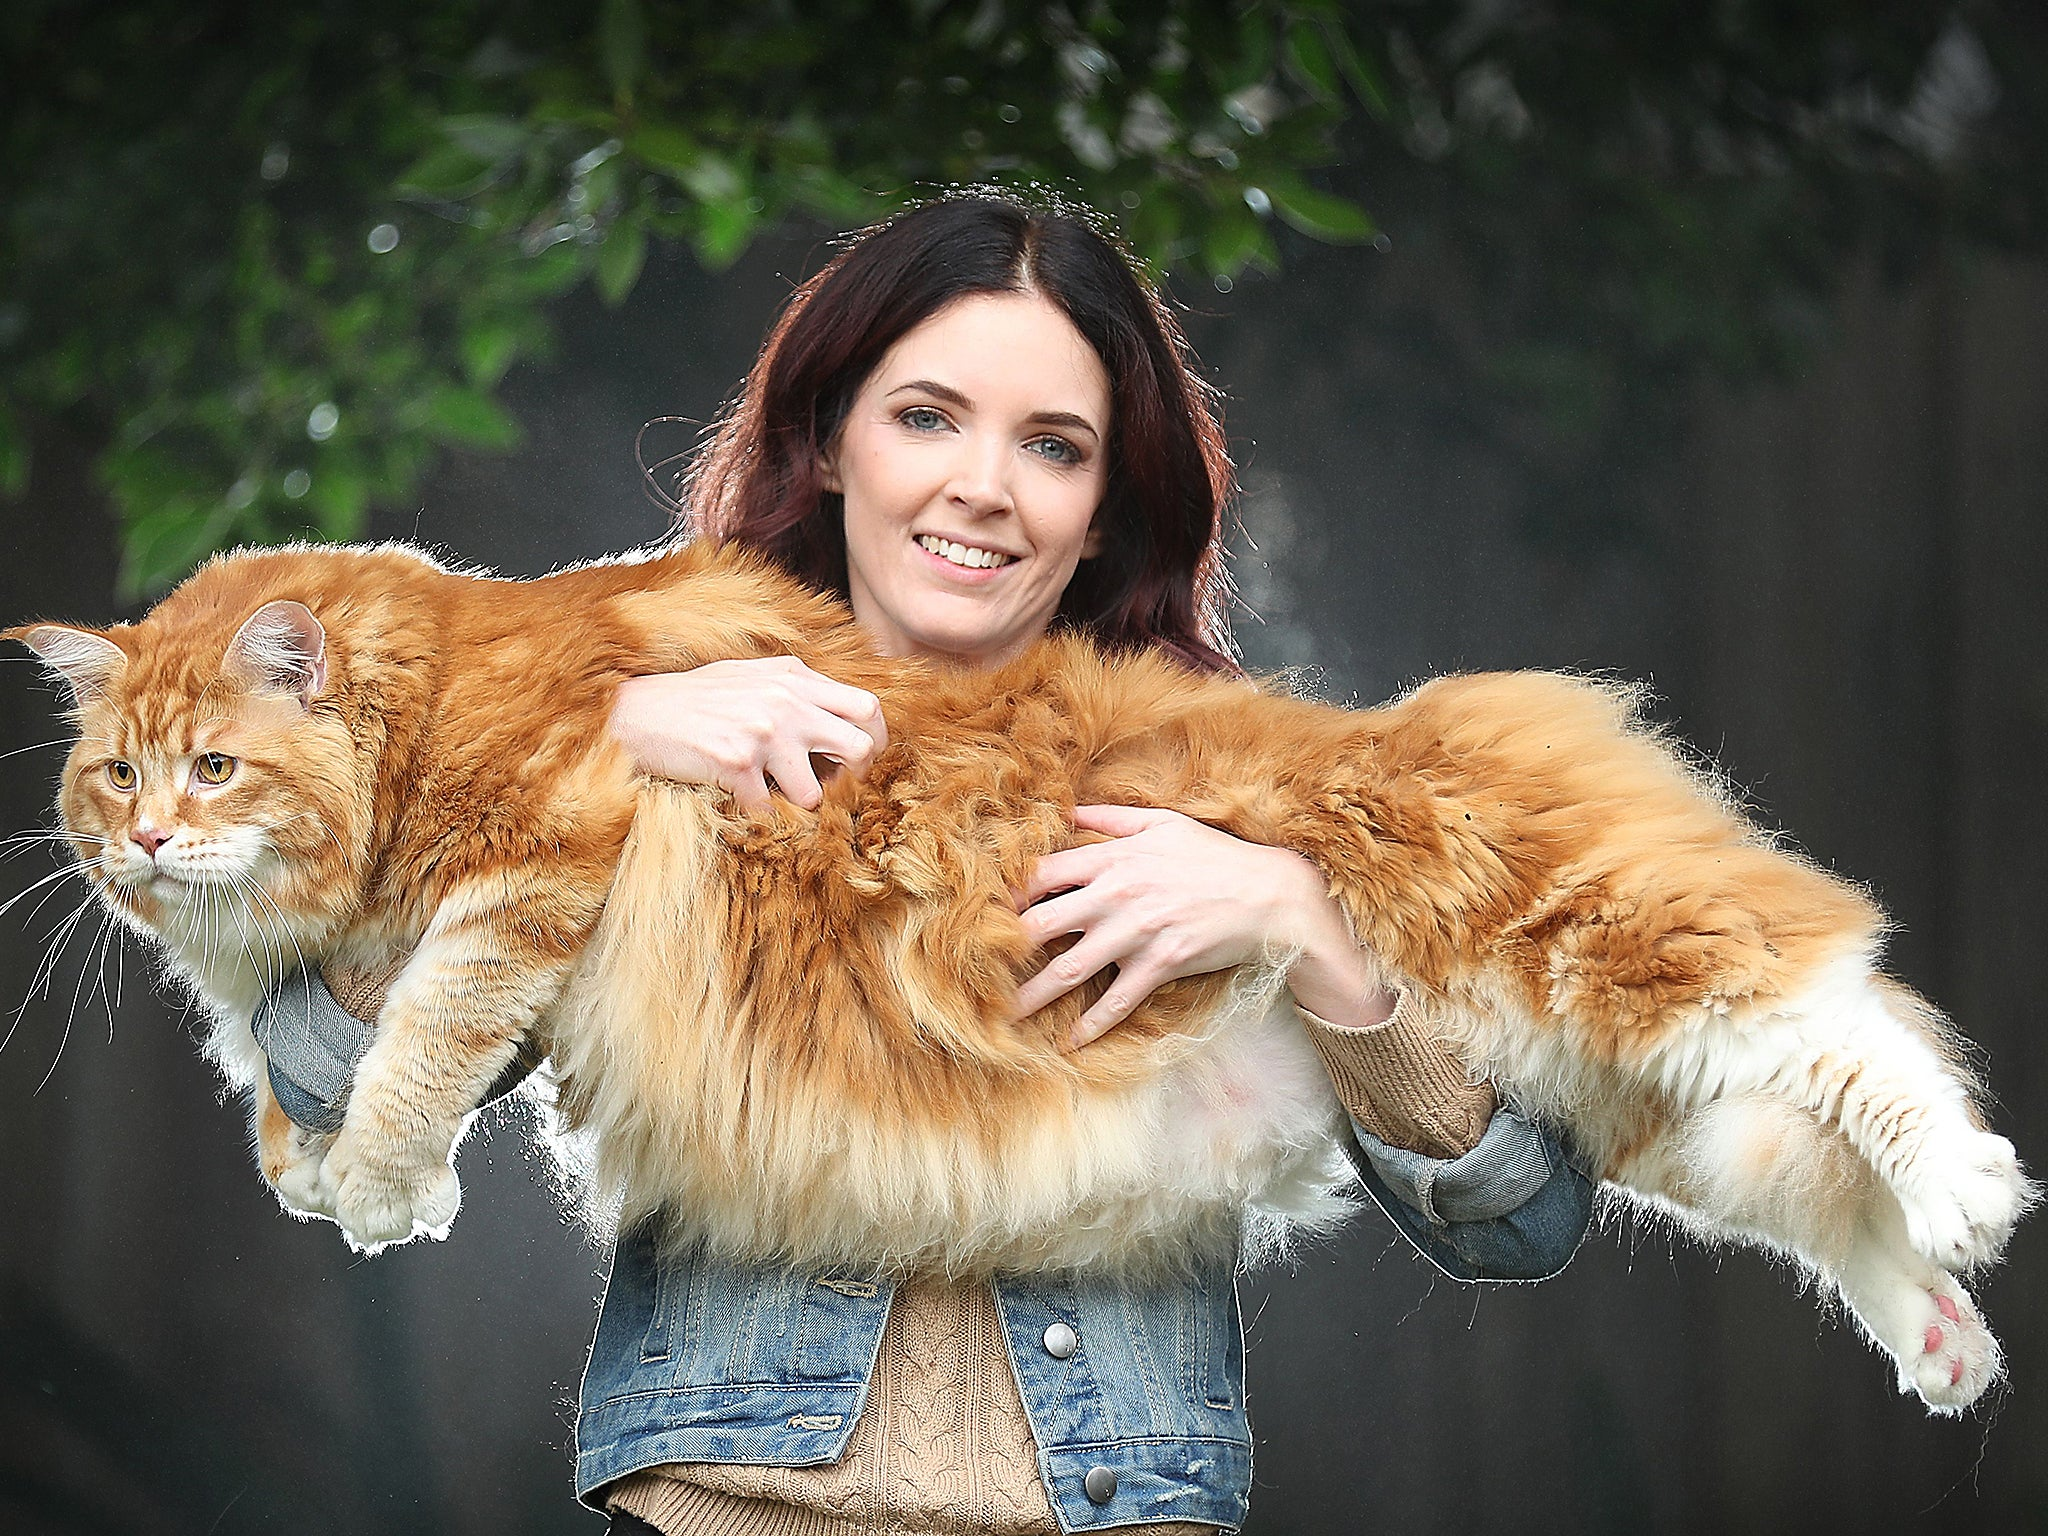 worlds longest cat in bid for record recognition the independent - Biggest Cat In The World Guinness 2016